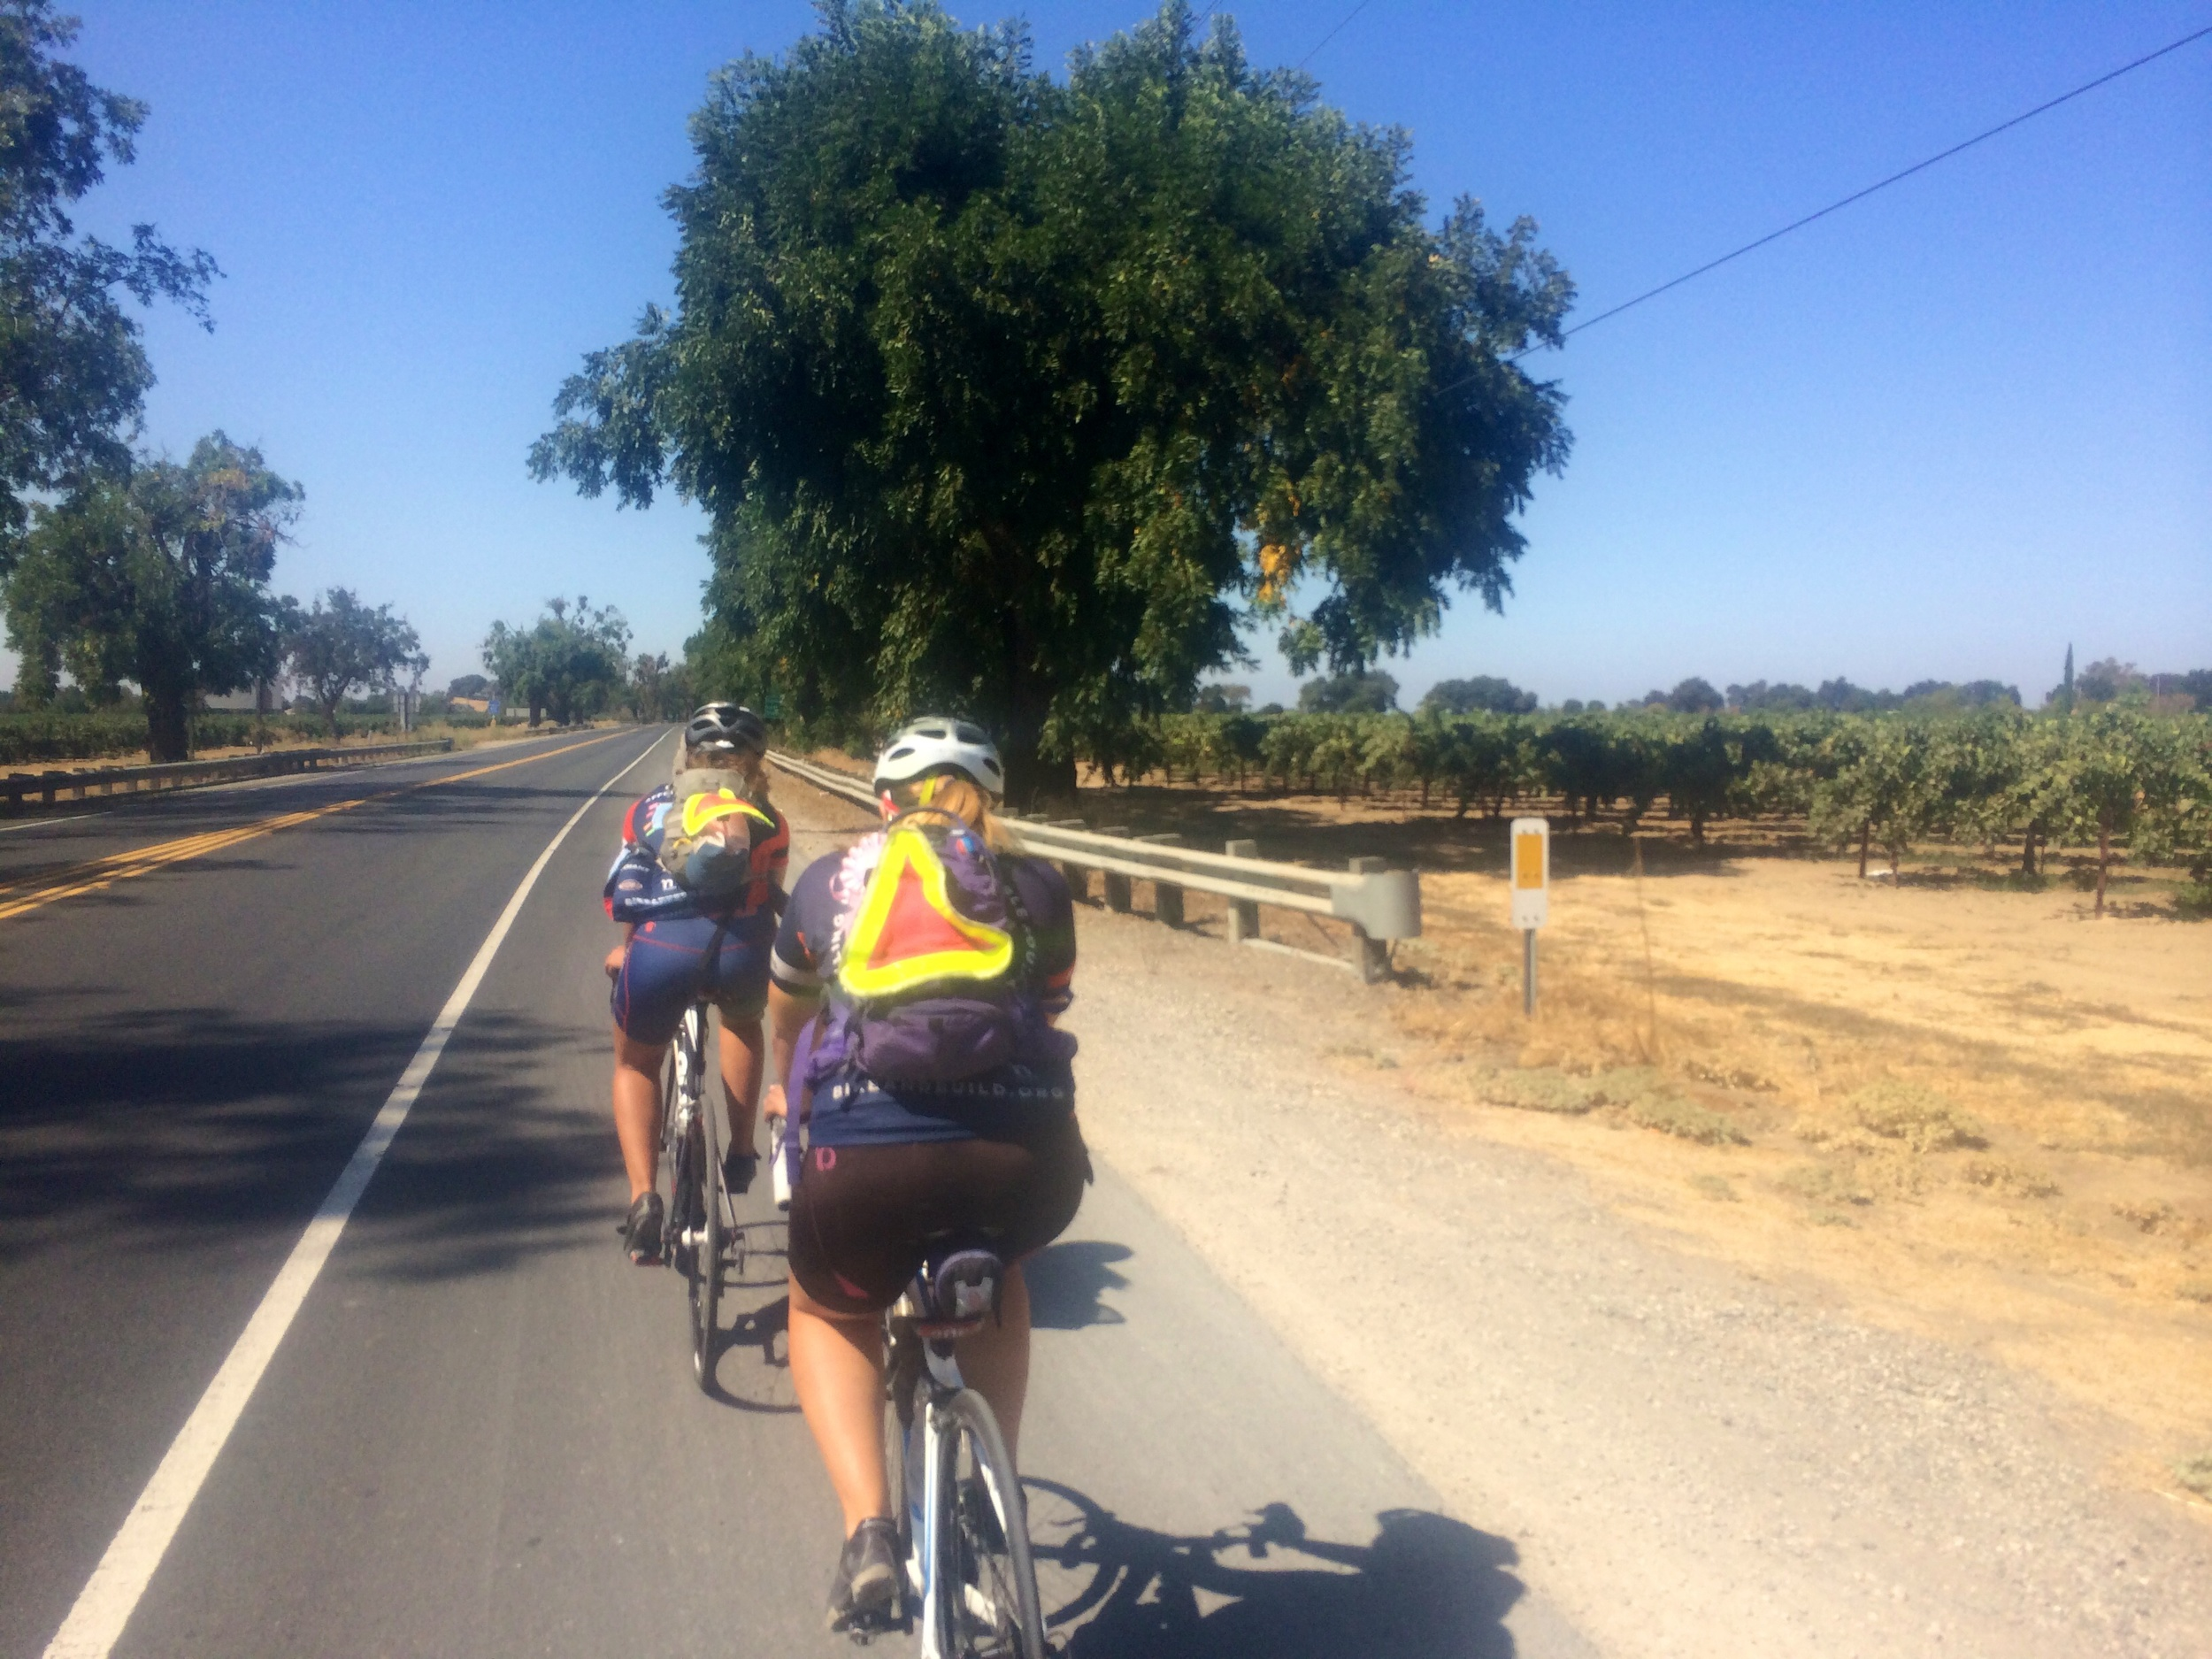 Riding through California to Stockton - reminded me so much of Sonoma County!